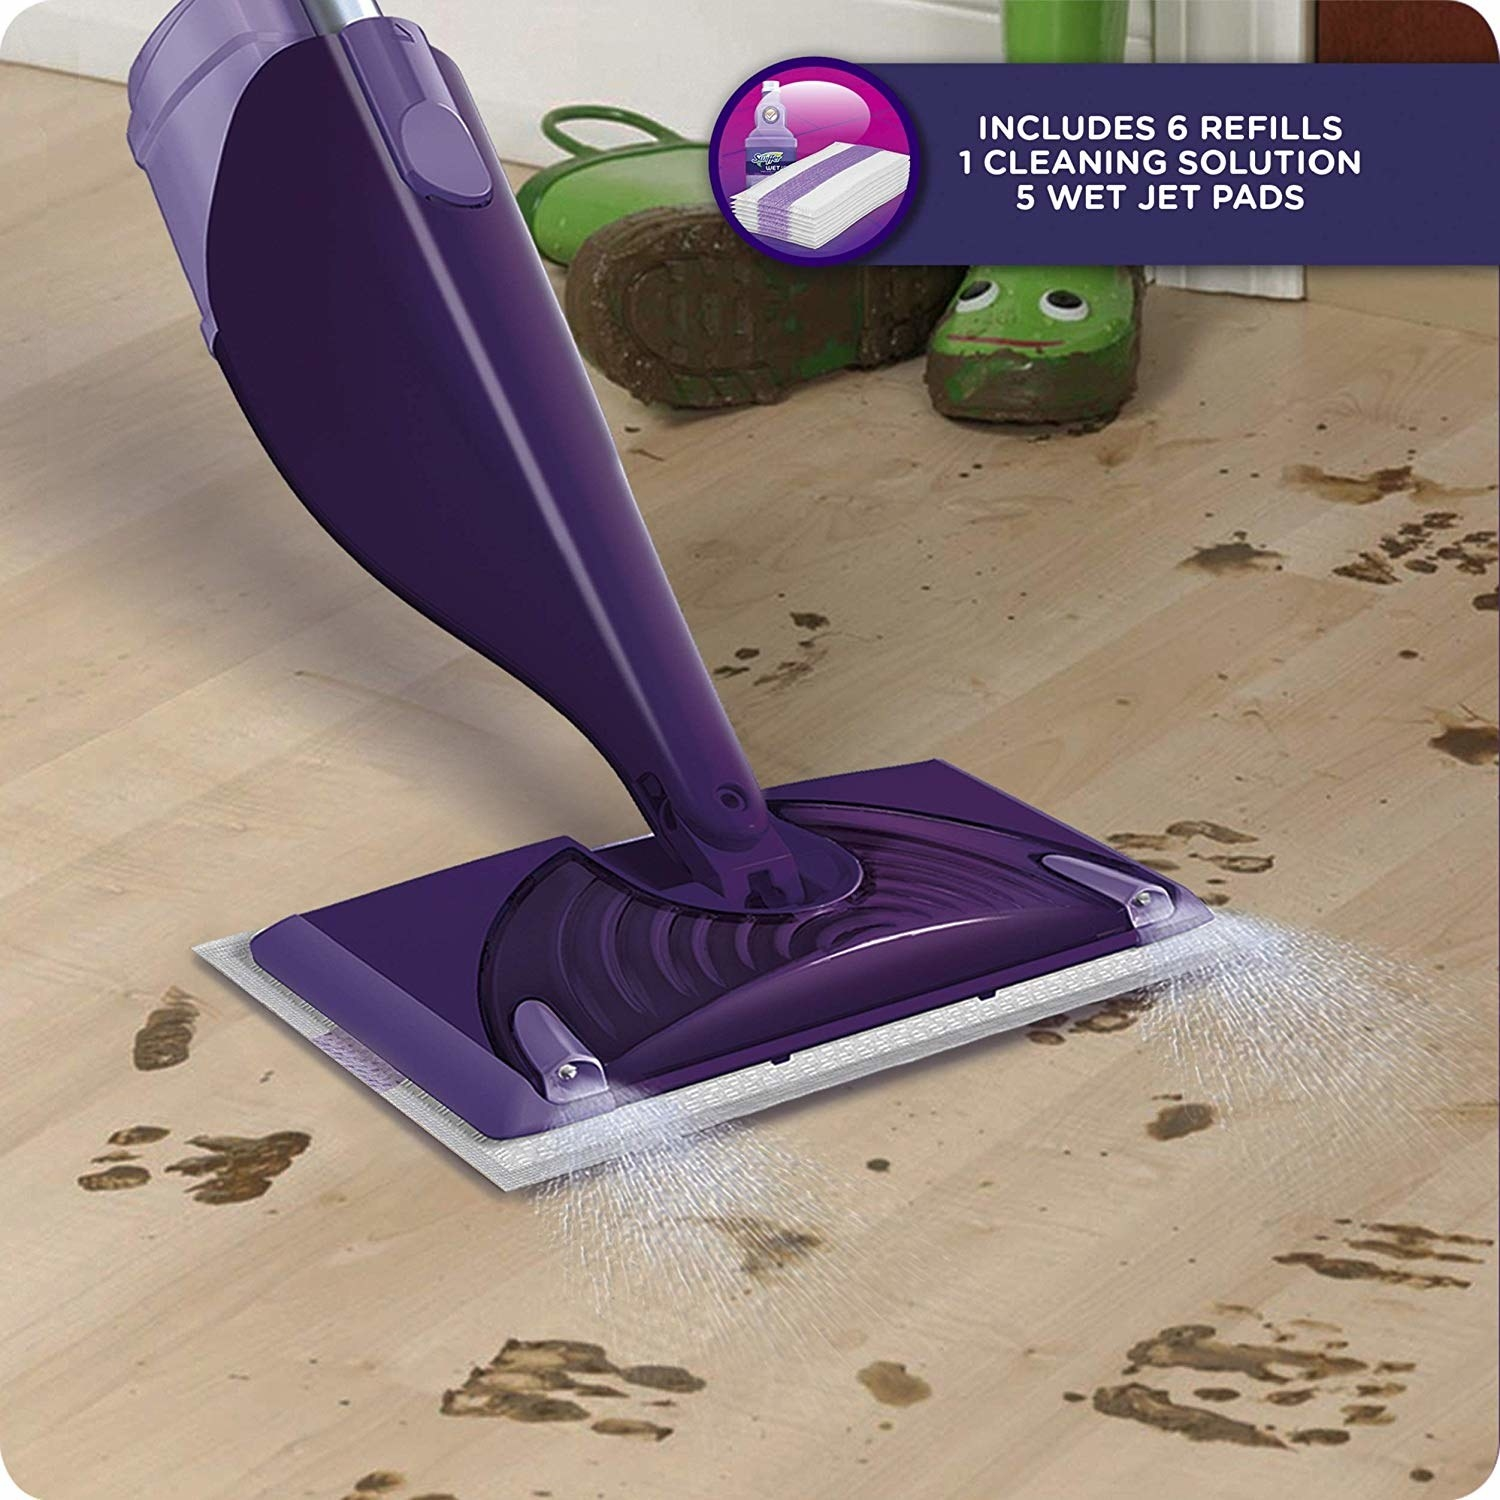 34 Amazing Products To Make Cleaning Your Whole House More